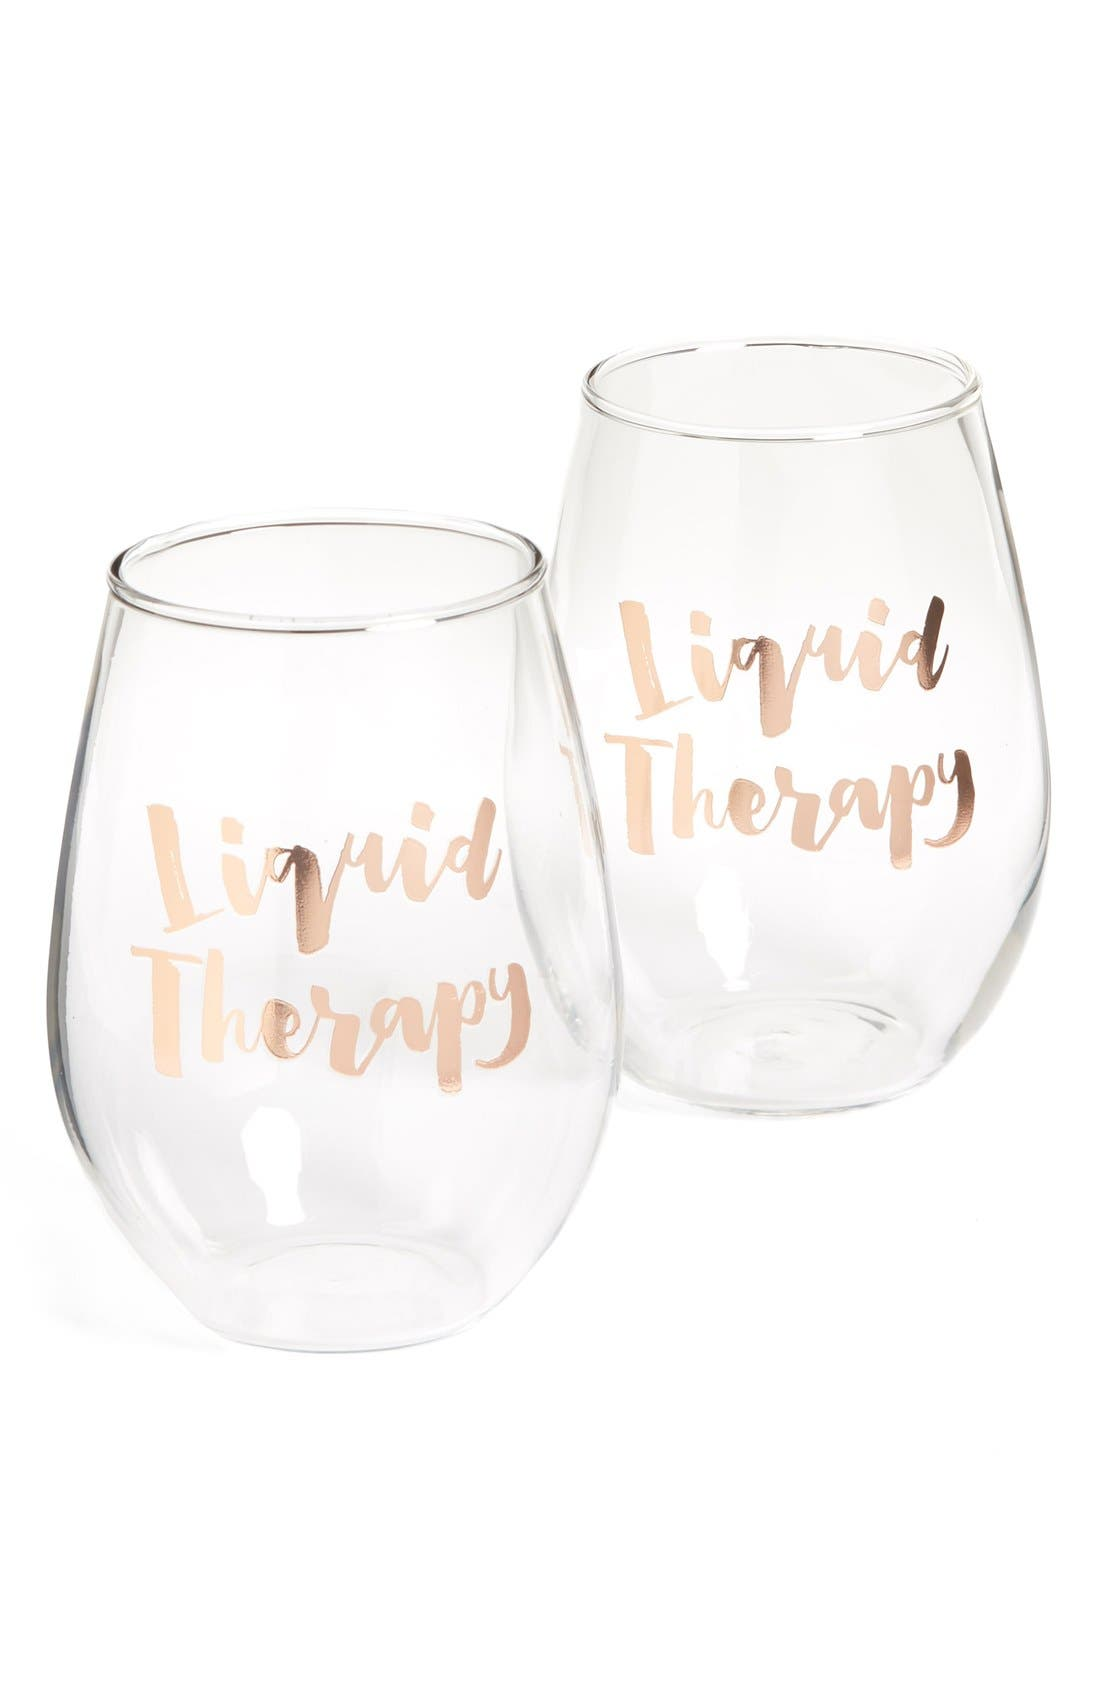 Liquid Therapy Set of 2 Stemless Wine Glasses,                         Main,                         color, 100